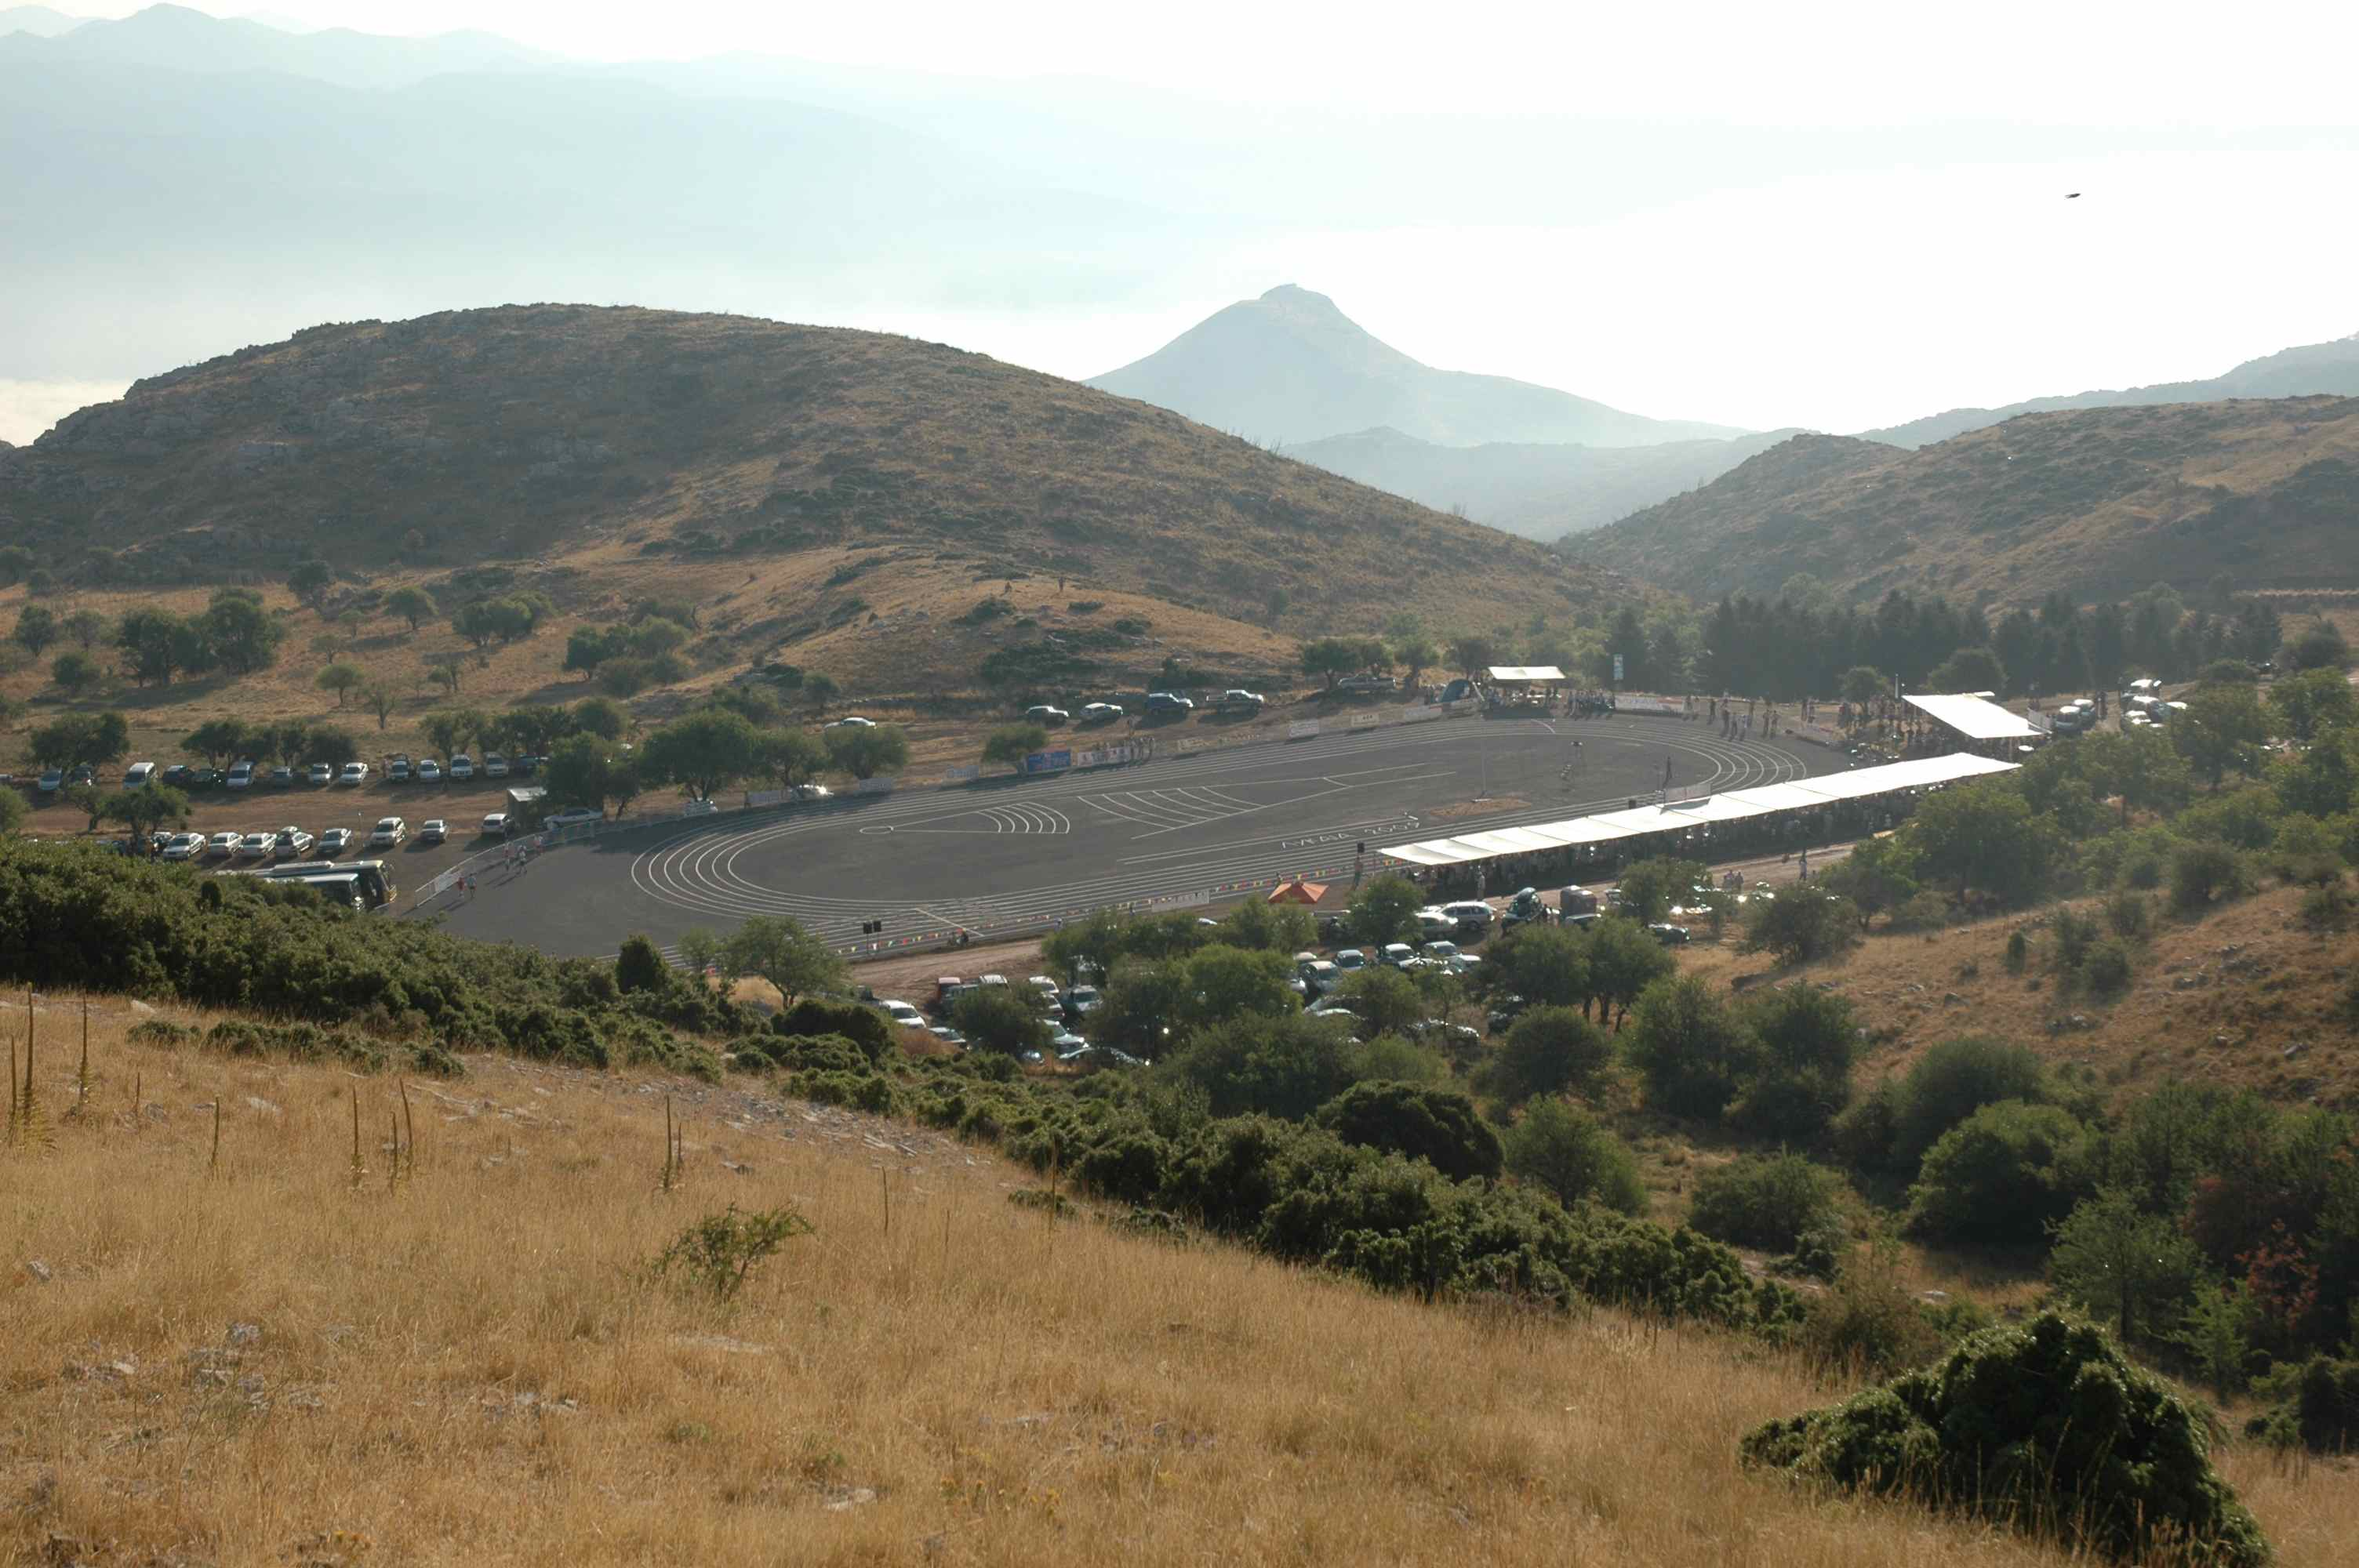 Site of the Lykaion Games, August 9, 2009